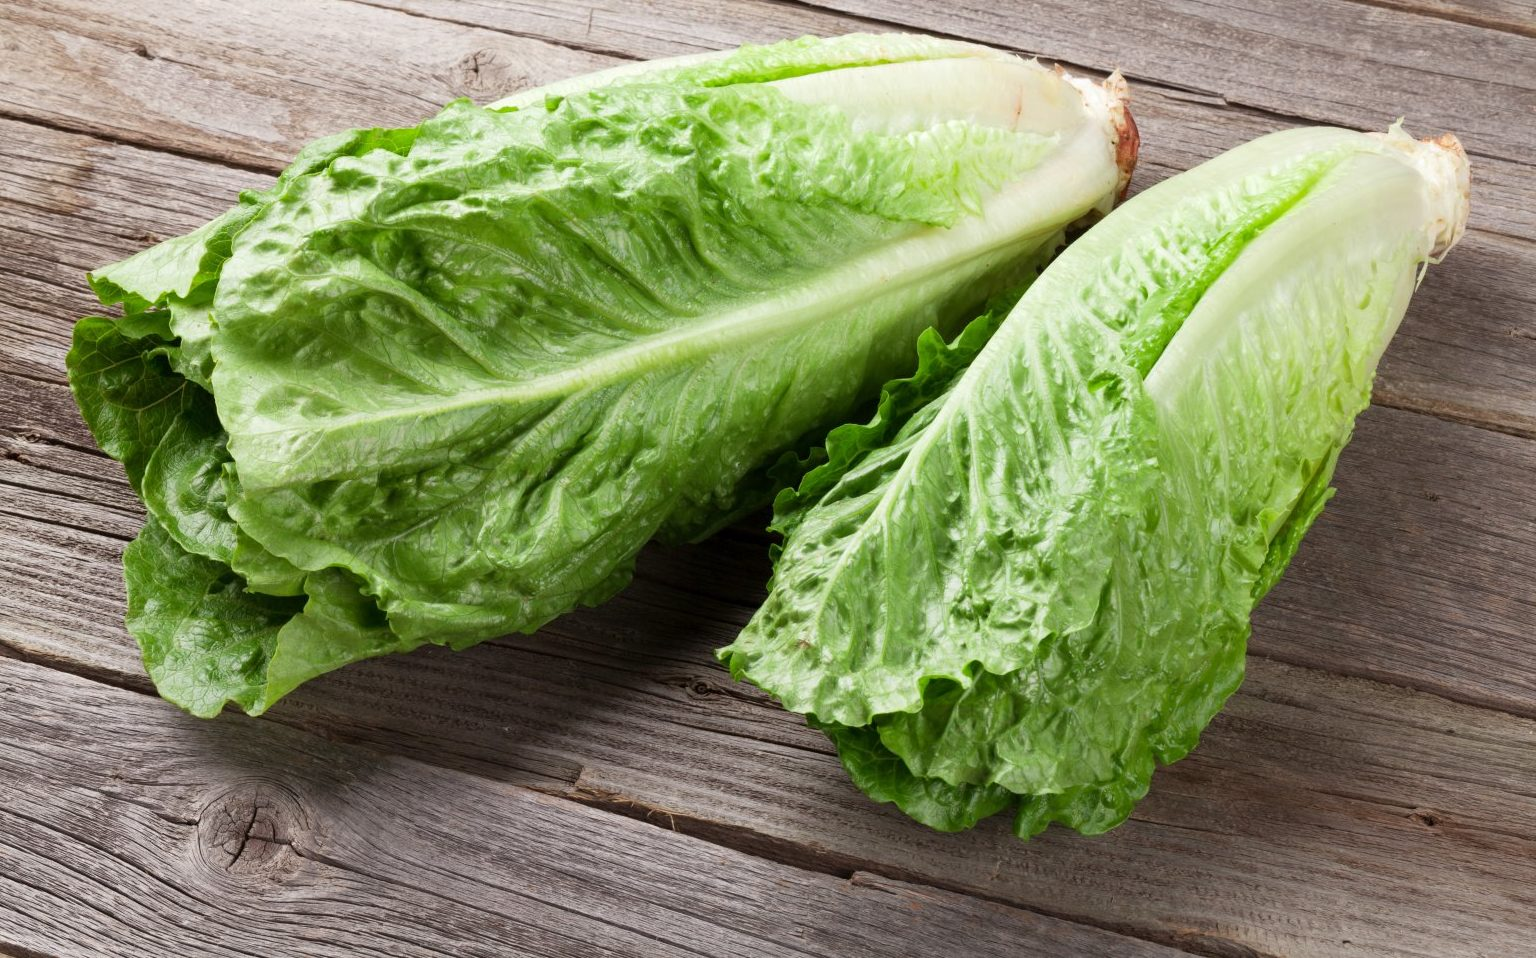 Romaine lettuce E. coli warning expands to include all types from Yuma